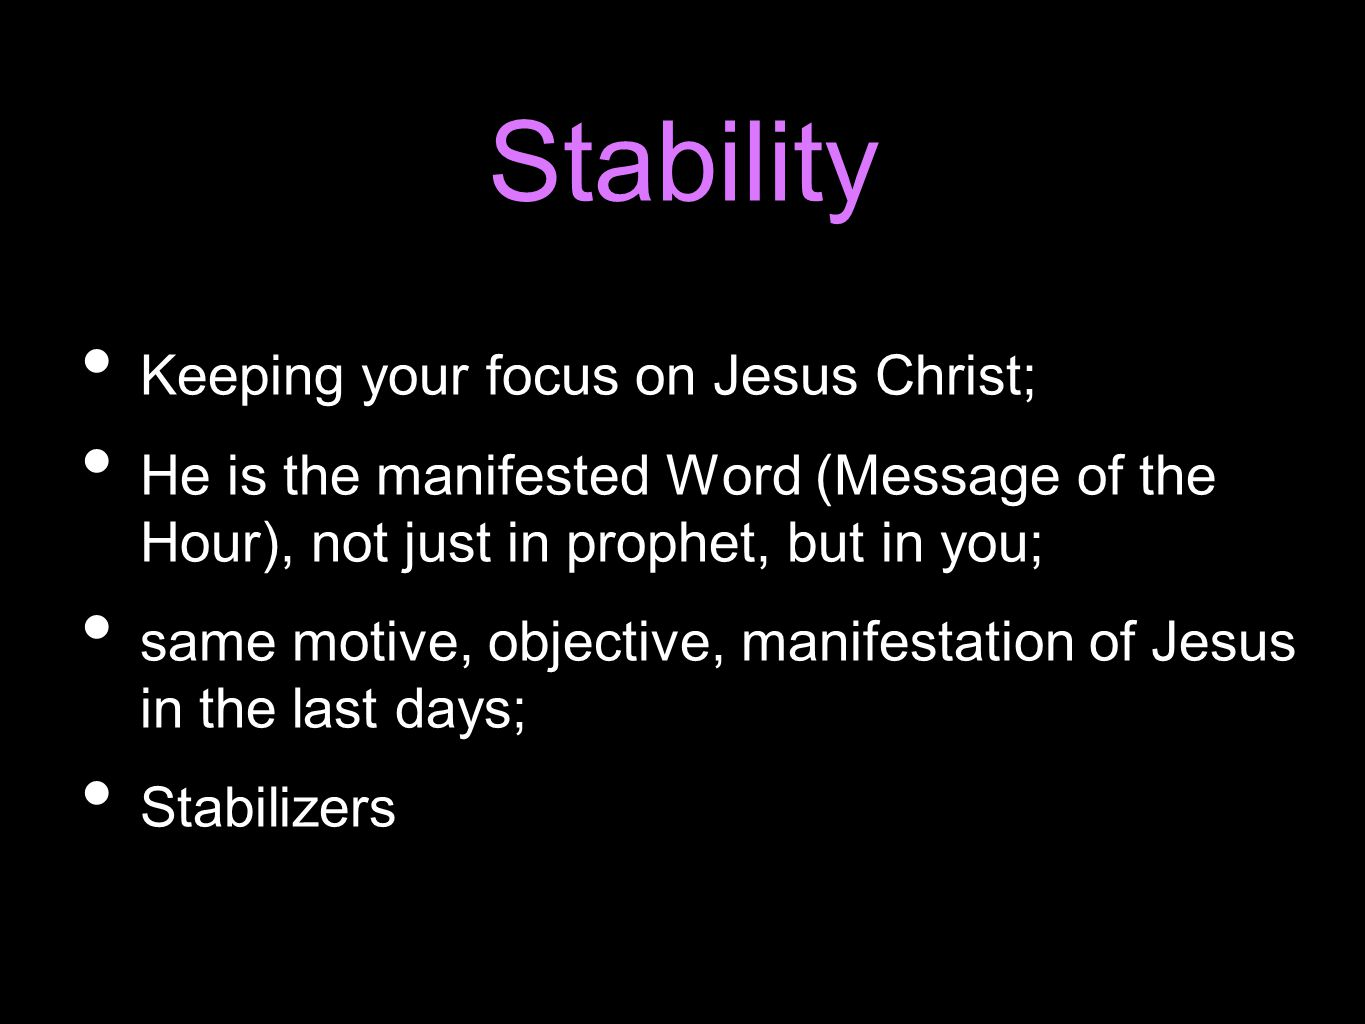 Stability Keeping your focus on Jesus Christ; He is the manifested Word (Message of the Hour), not just in prophet, but in you; same motive, objective, manifestation of Jesus in the last days; Stabilizers